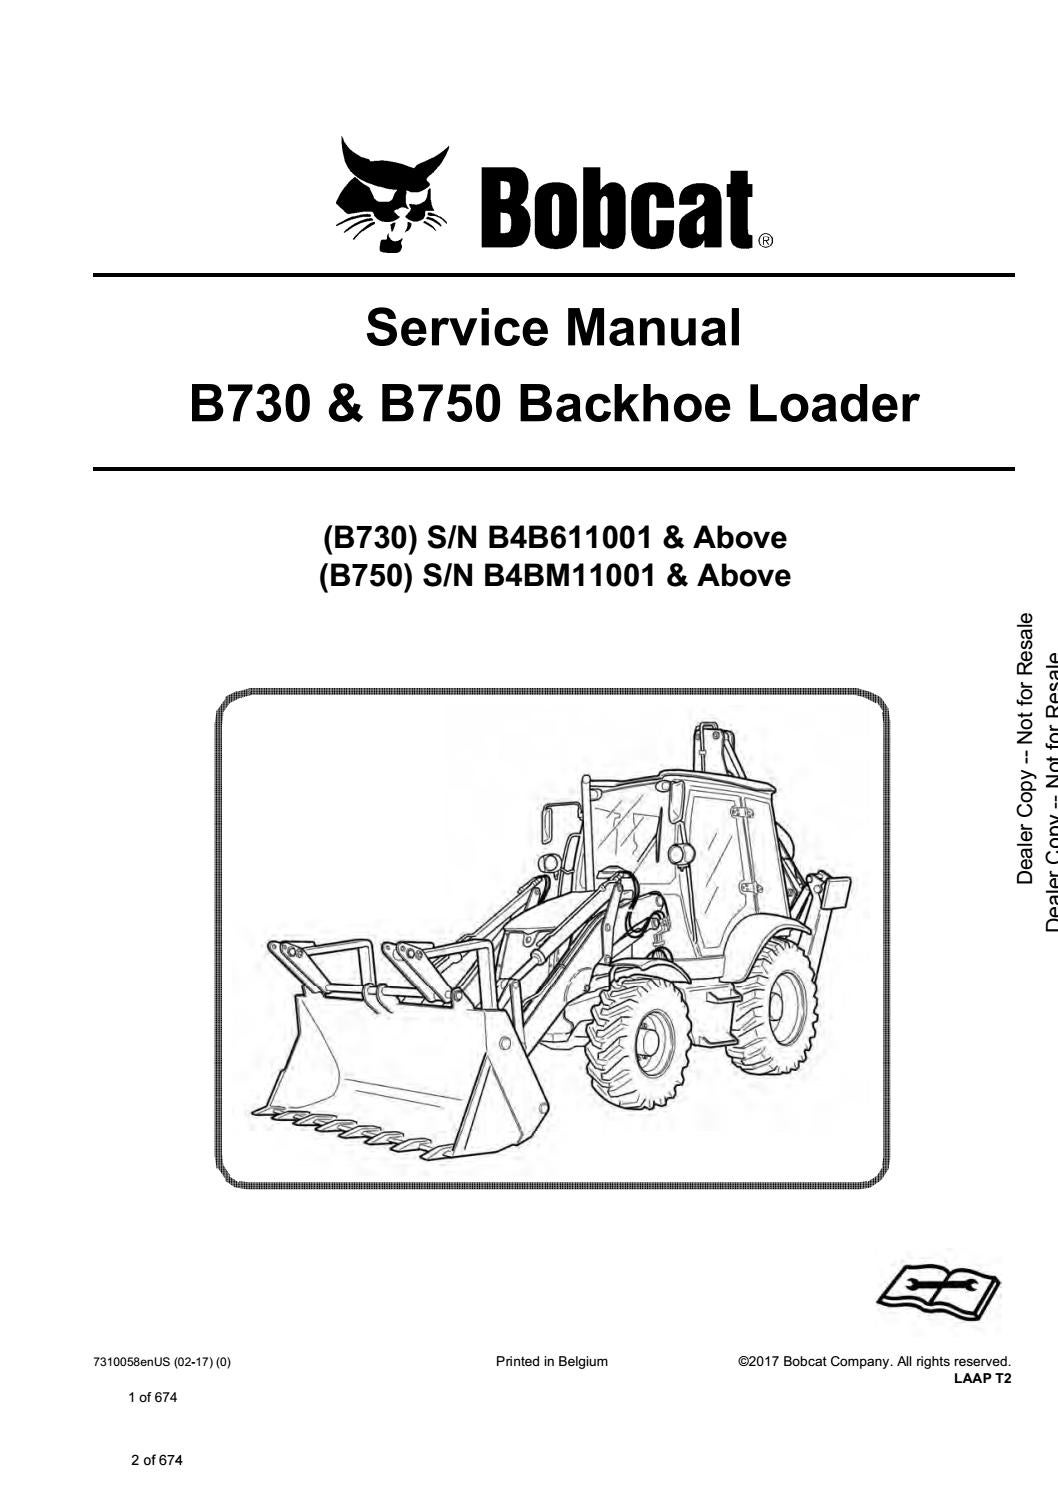 Bobcat B730 Backhoe Loader Service Repair Manual Sn B4b611001 And Above By Mixiong5796612 Issuu